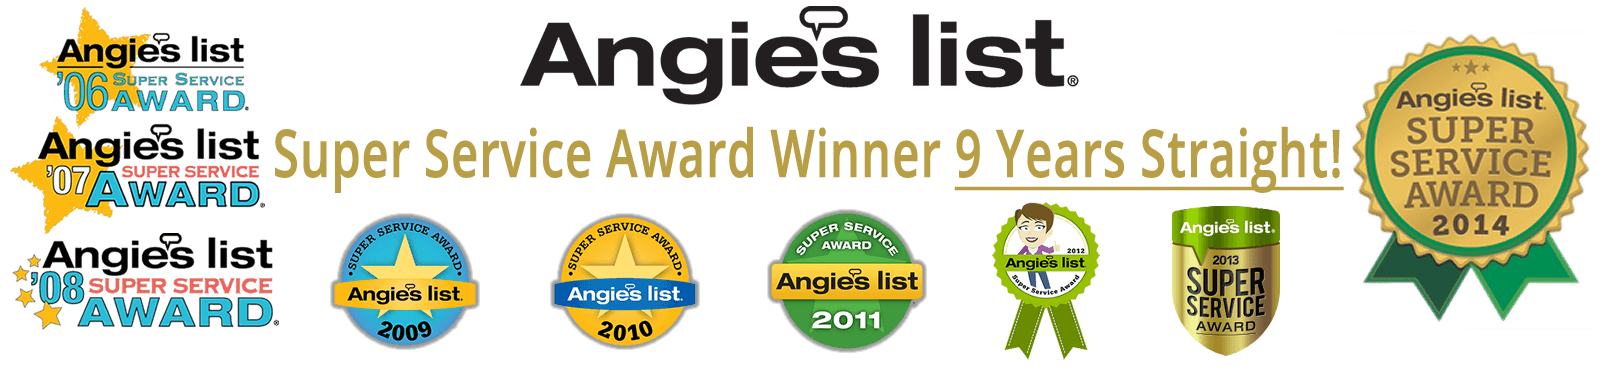 Angie's List Super Service Award 8 Years in a Row